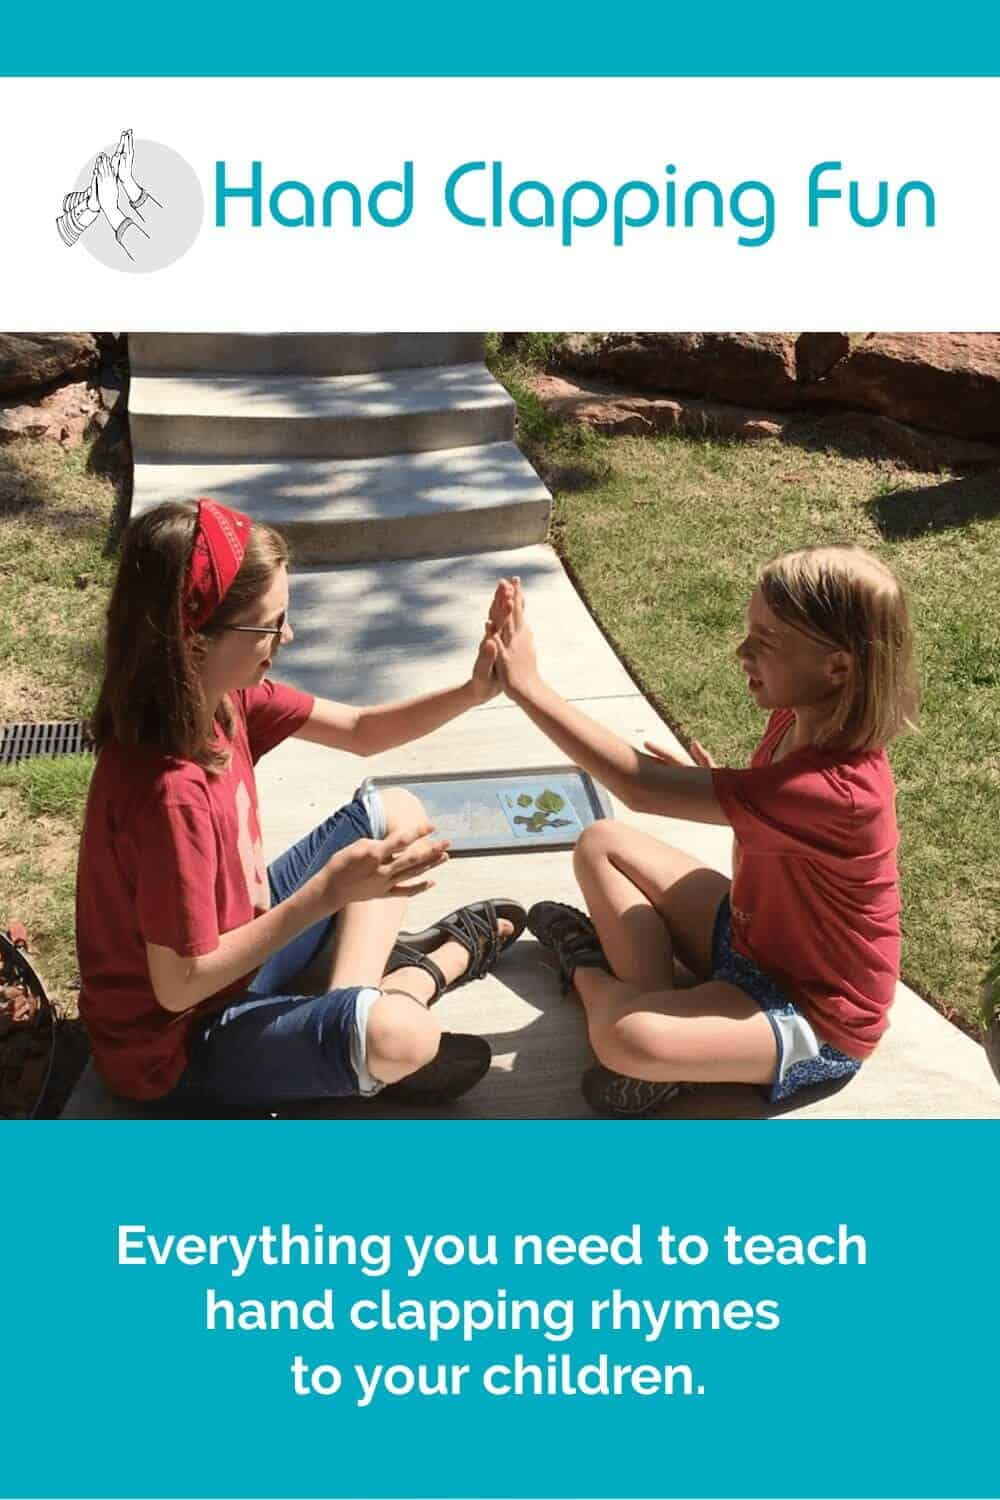 Everything you need to teach hand clapping rhymes to the next generation. via @TriLearning